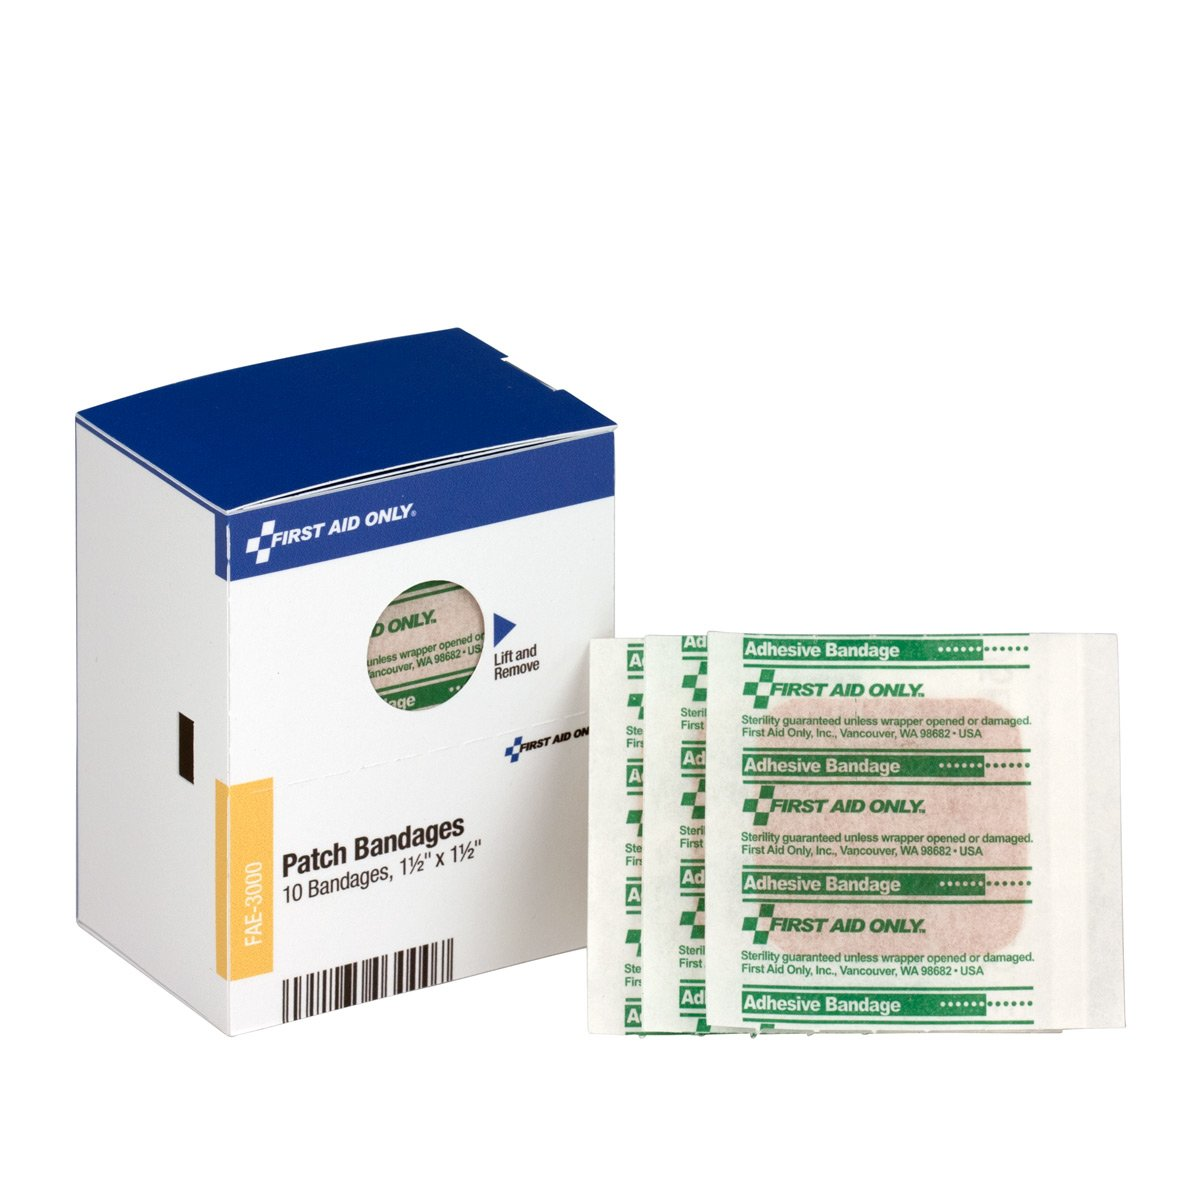 First Aid Only Patch Bandages, 1 1/2 x1 1/2, 10 Count